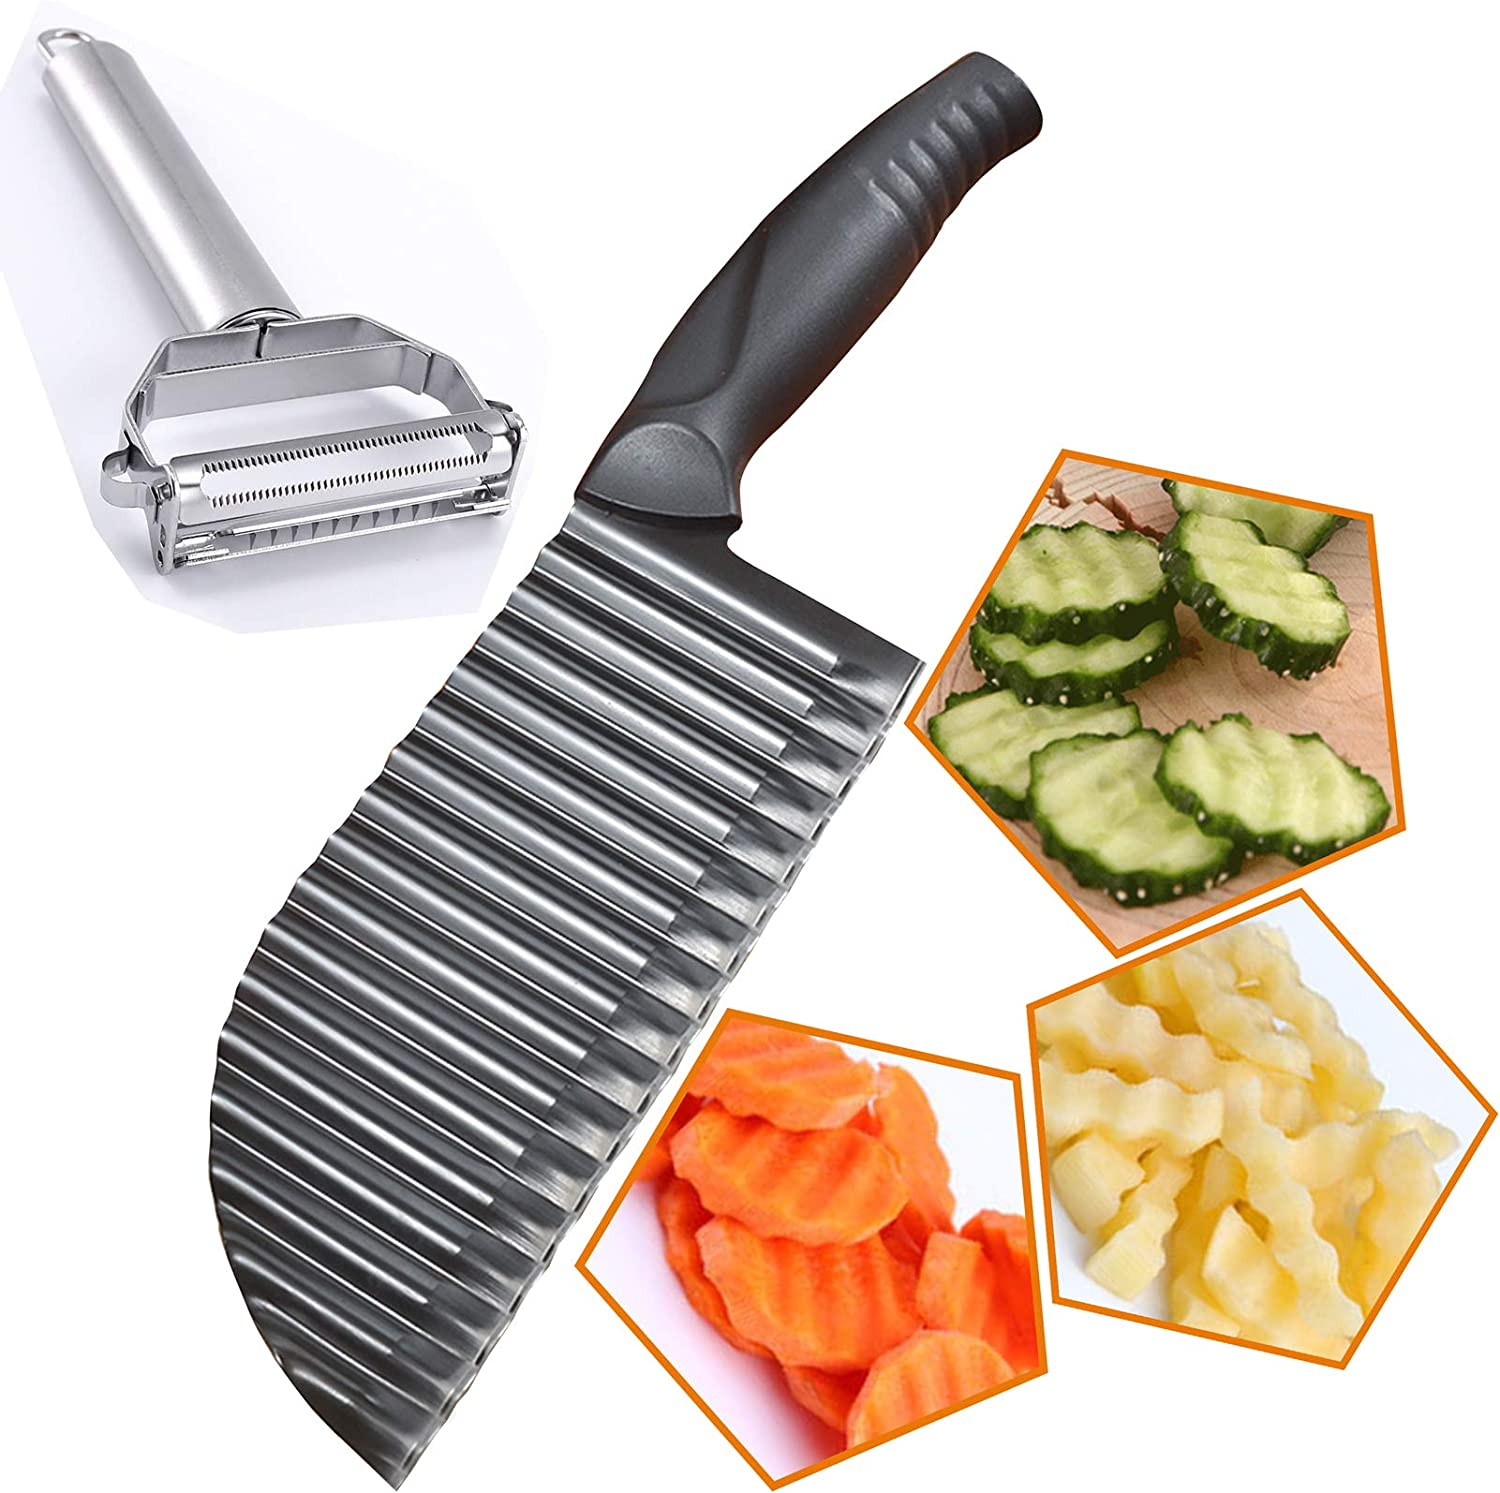 Premium Potato Crinkle Cutter, Stainless Steel Waffle Fly Cutter with a sturdy Julienne Peeler, Wavy Vegetable Slicer Kitchen Chopper Knife for Baby Food veggie Salad Carrots French Fries, Black